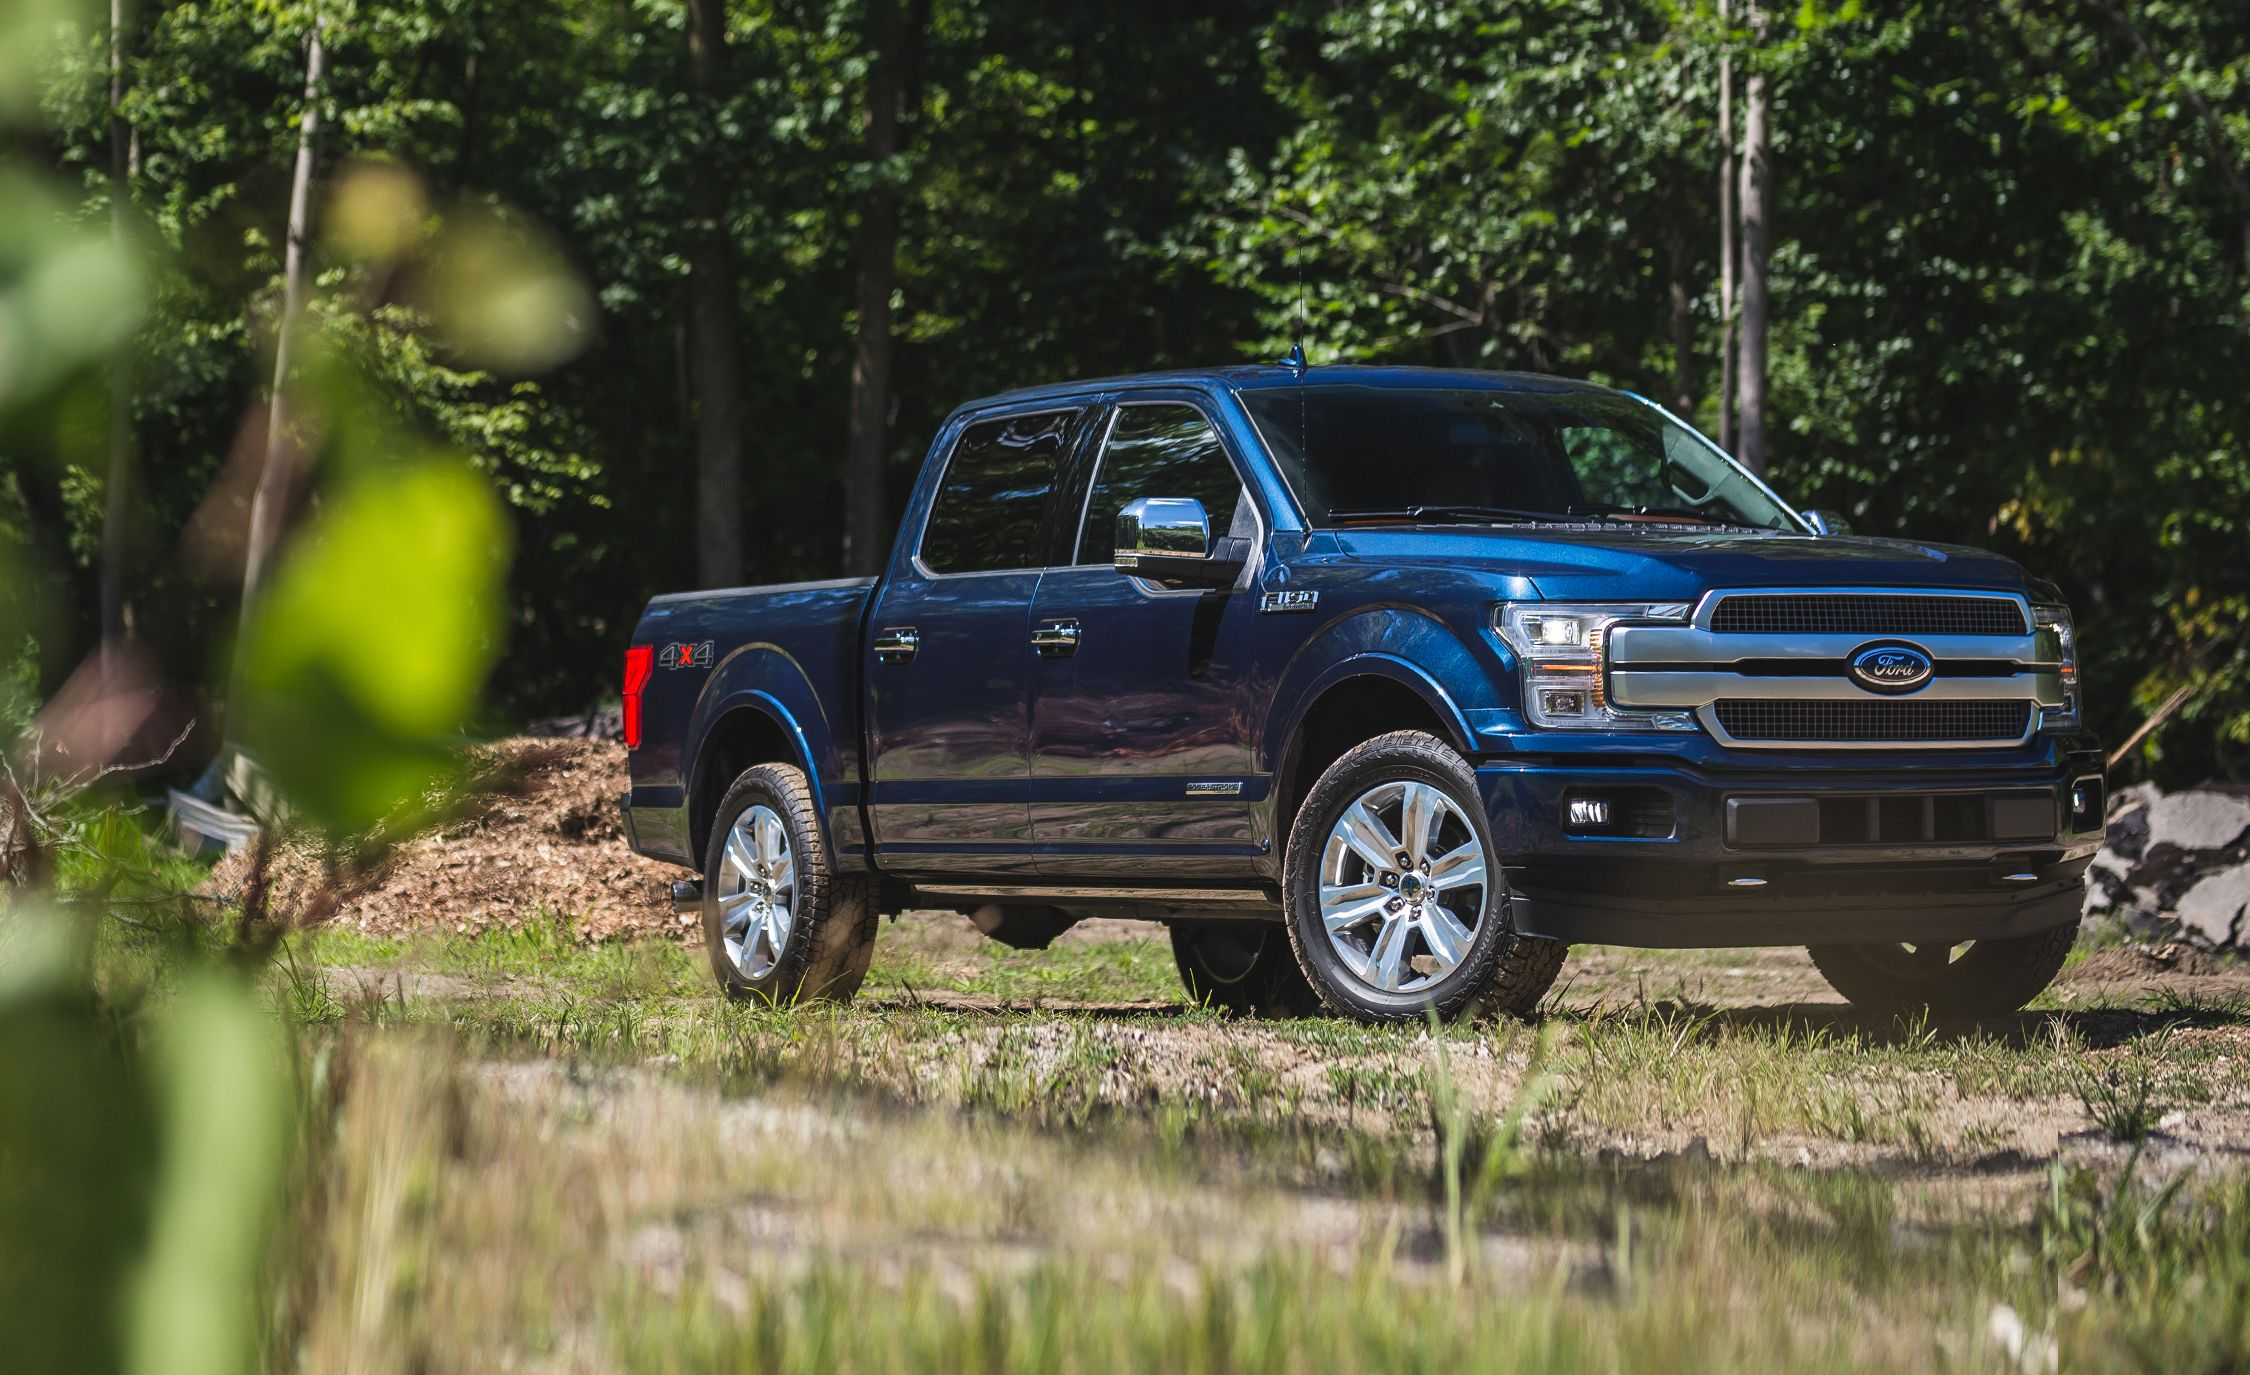 Get the most out of your diesel truck with Ford PowerStroke diesel components